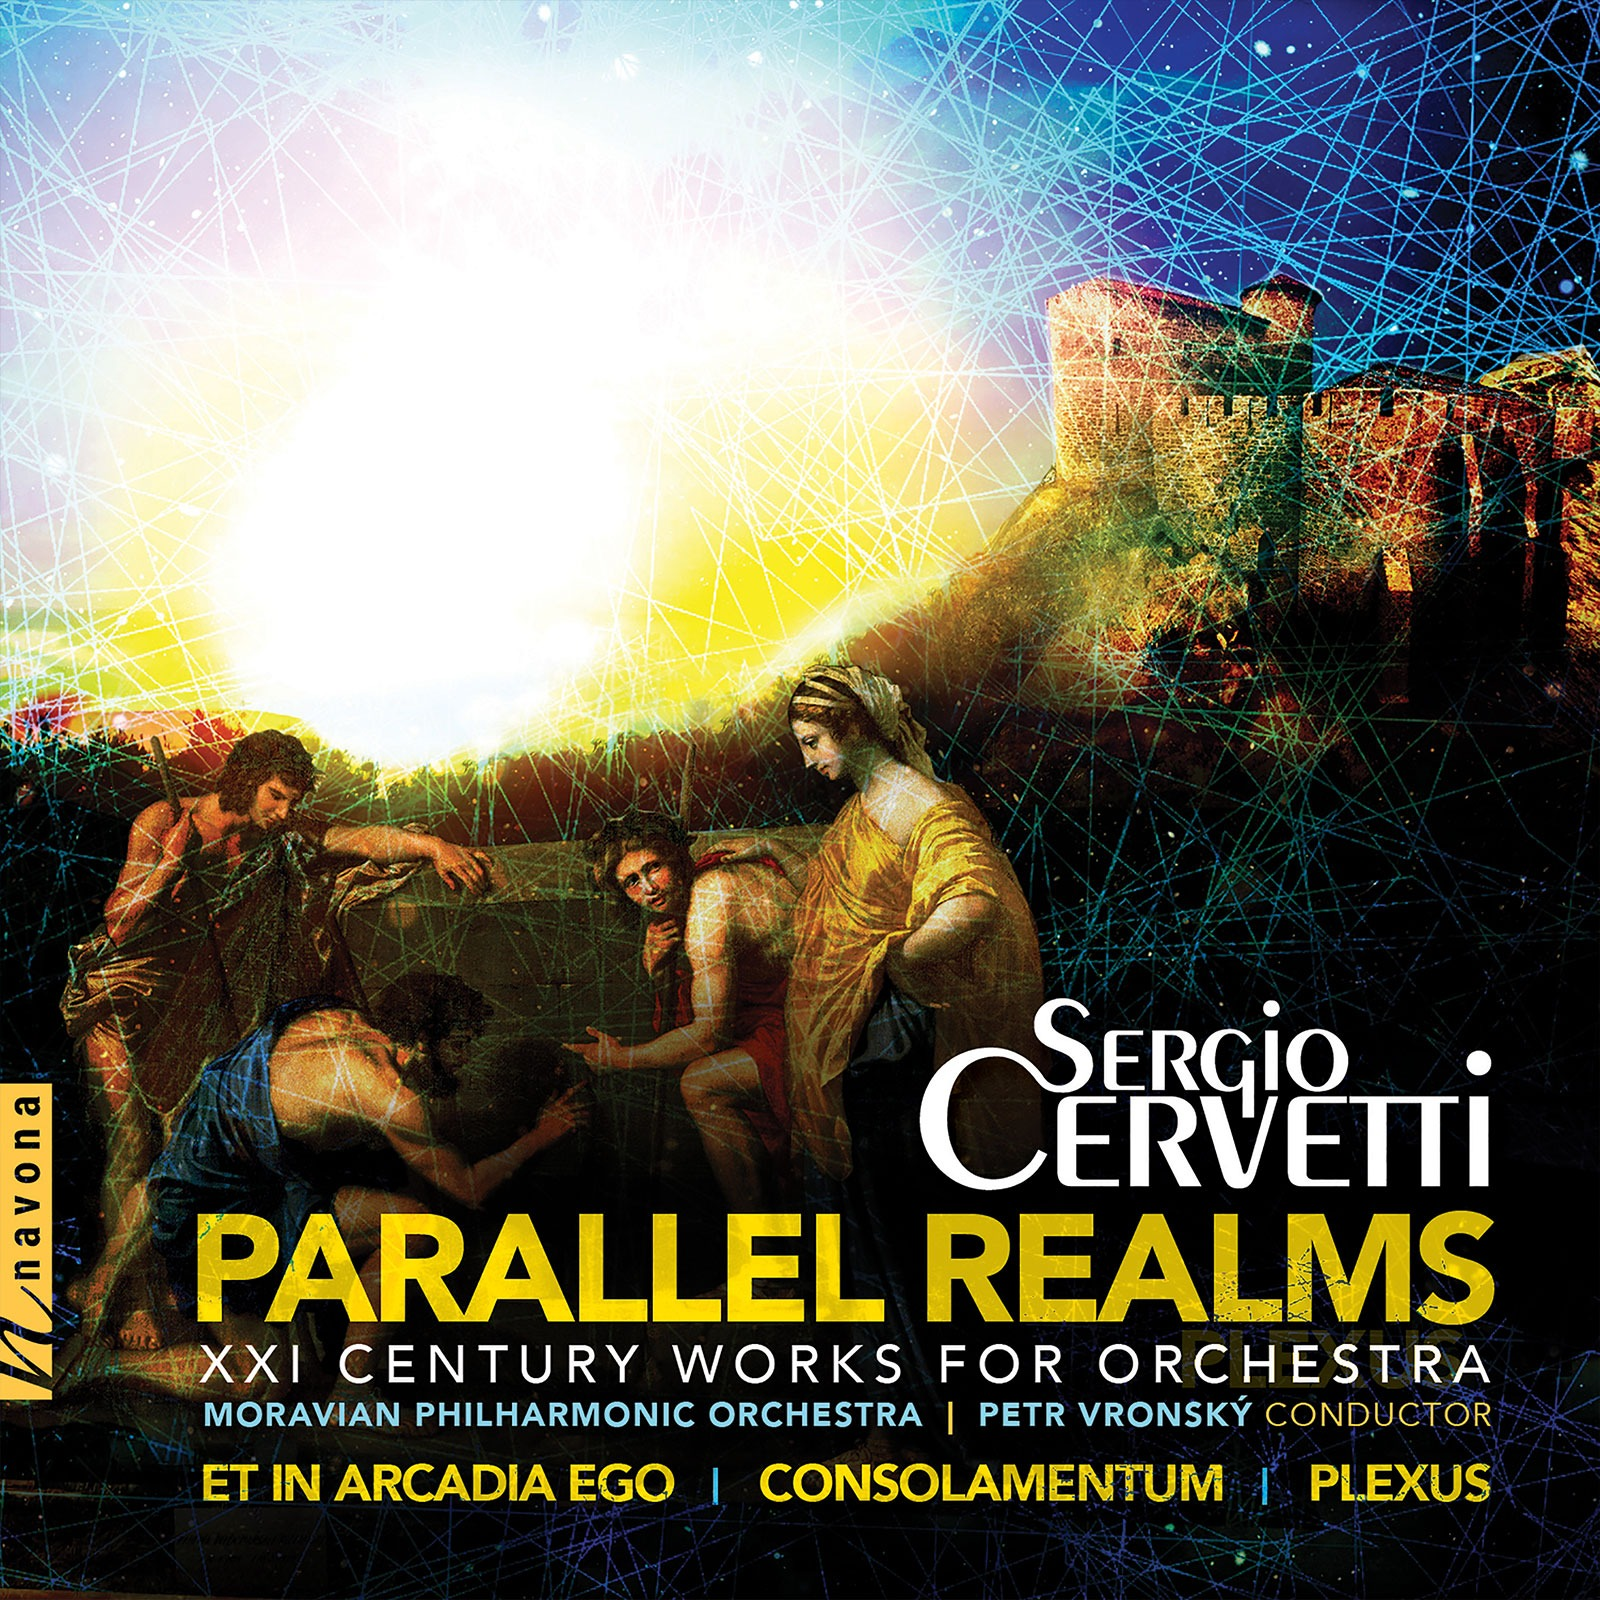 Parallel Realms